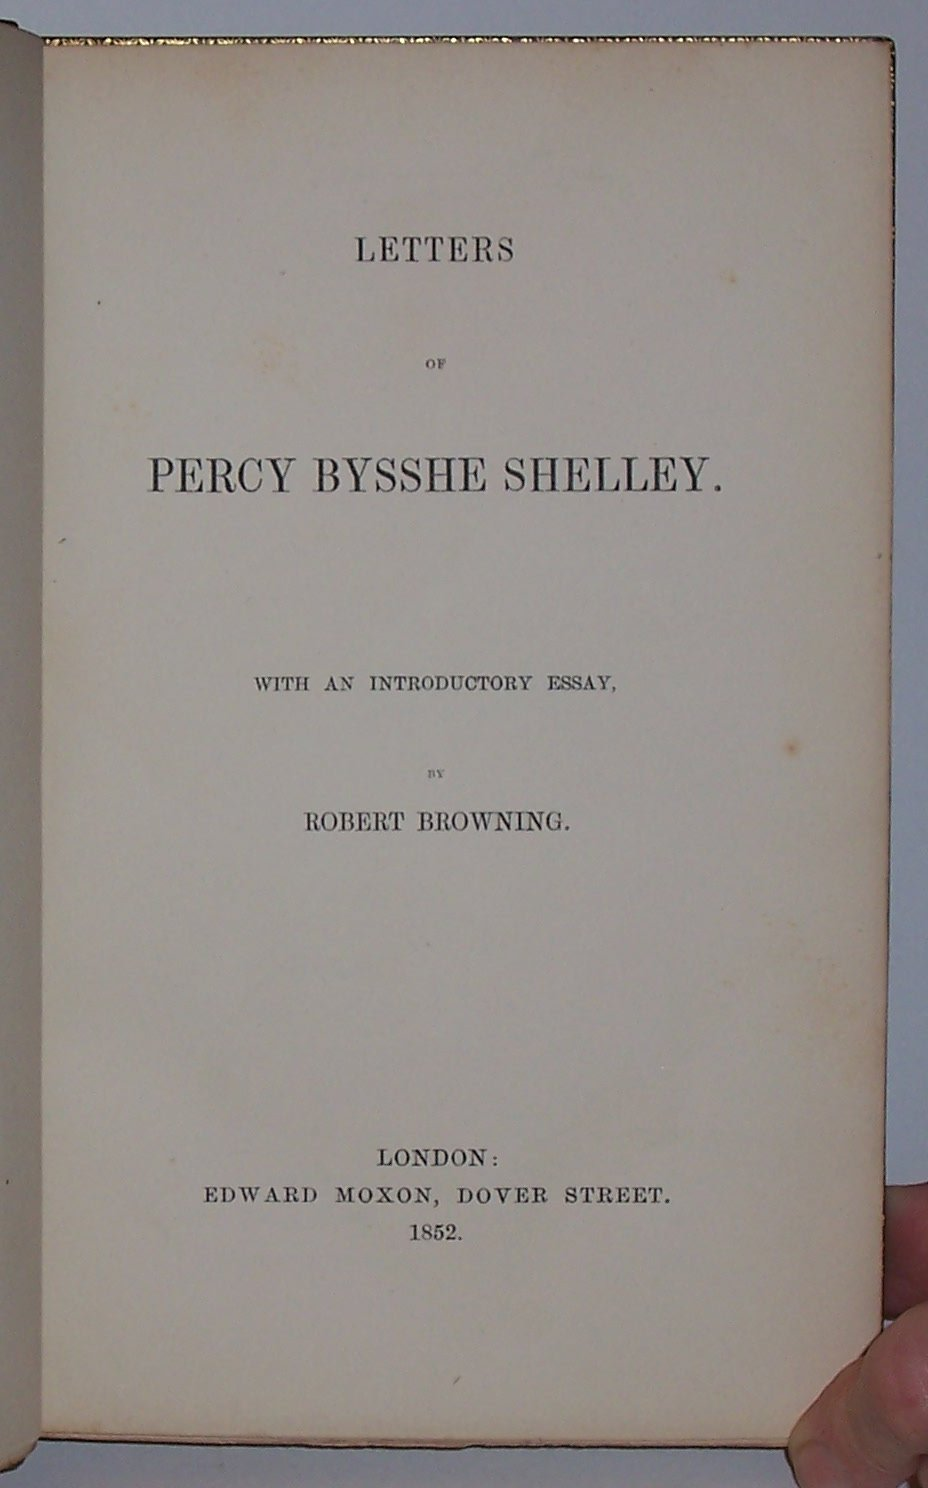 robert browning essay on shelley Professor emeritus of english, bishop's university editor of selections from swinburne (1945) and author of the infinite moment and other essays in robert browning (1950) 1 thomas j hookham, jr, was a personal friend of shelley and his family as well as having constant business connections.